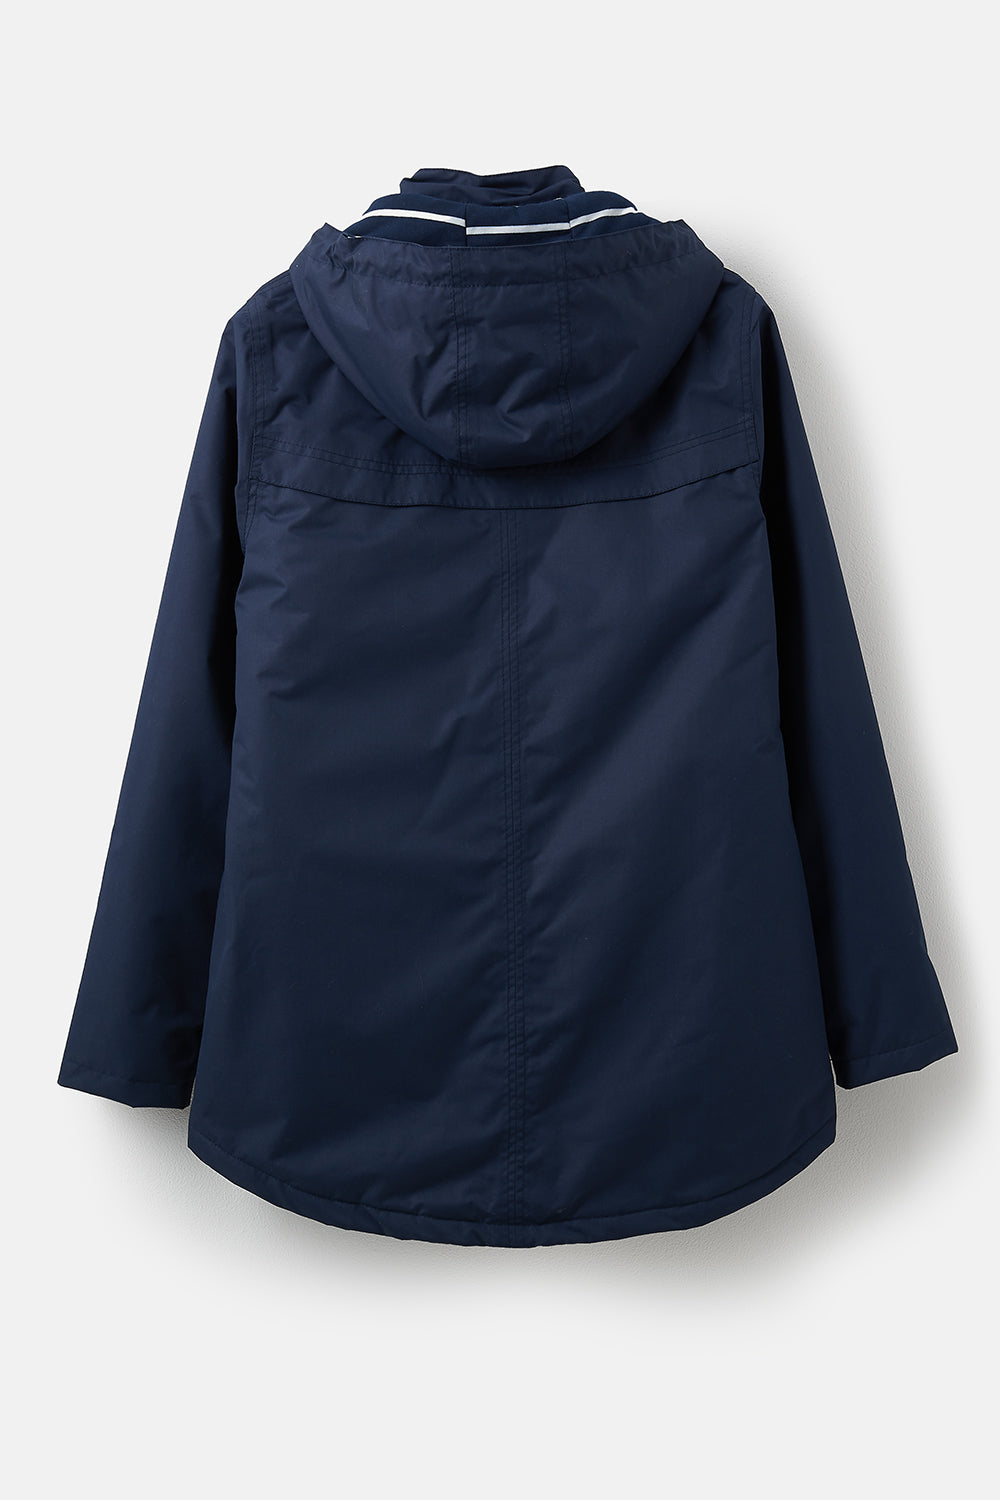 Lighthouse Iona Womens Warm Waterproof Raincoat - Navy